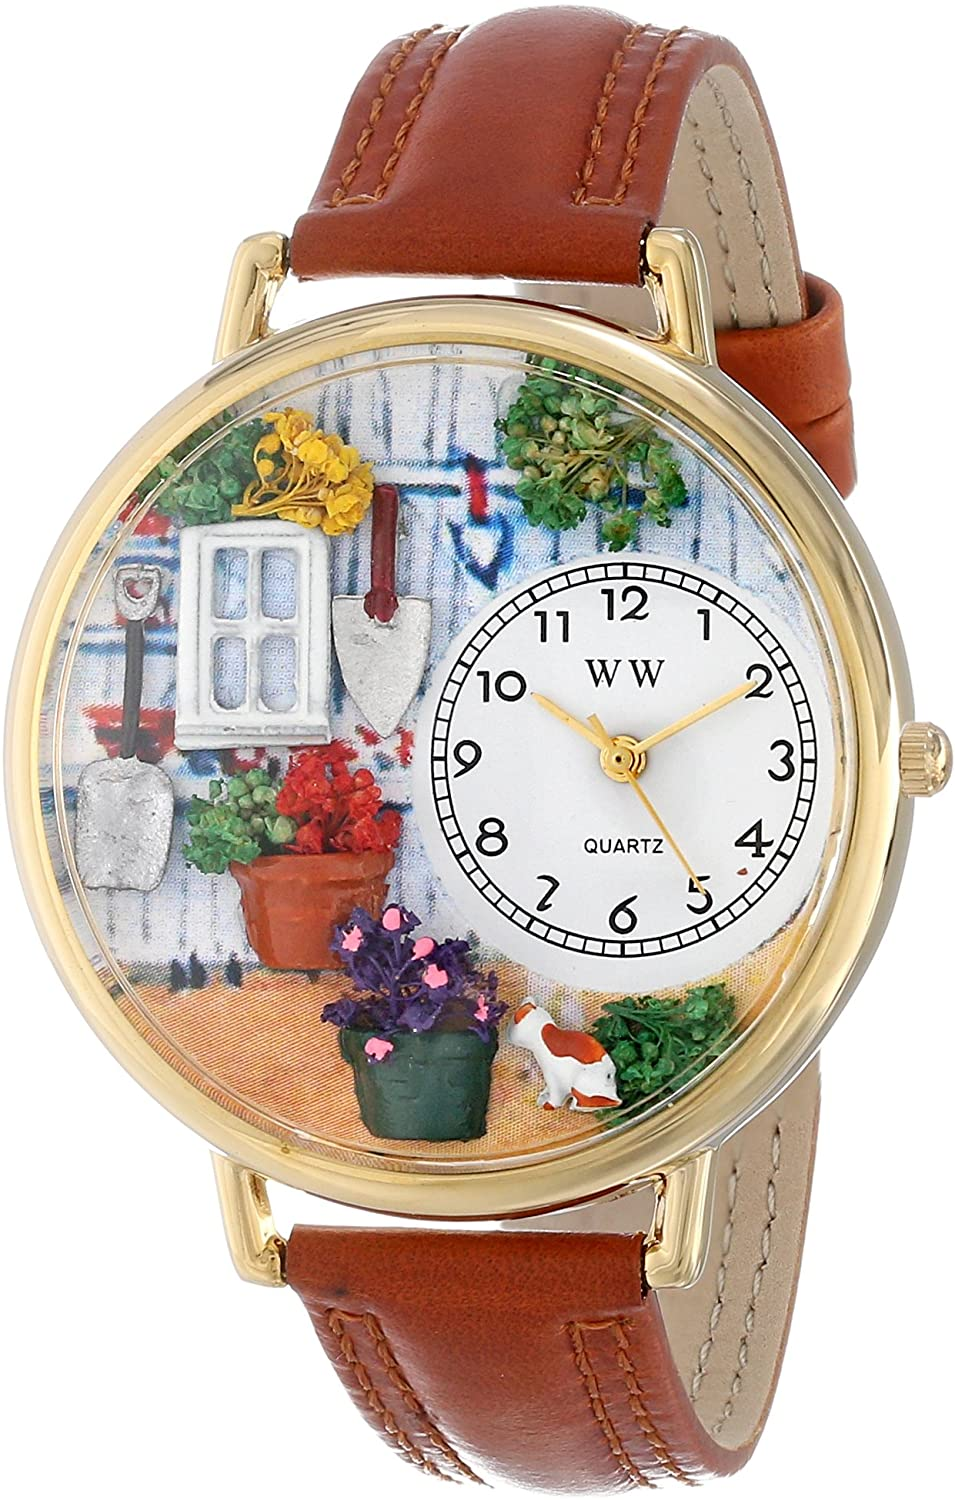 Whimsical Watches Women's G1210008 Gardening Tan Leather Watch